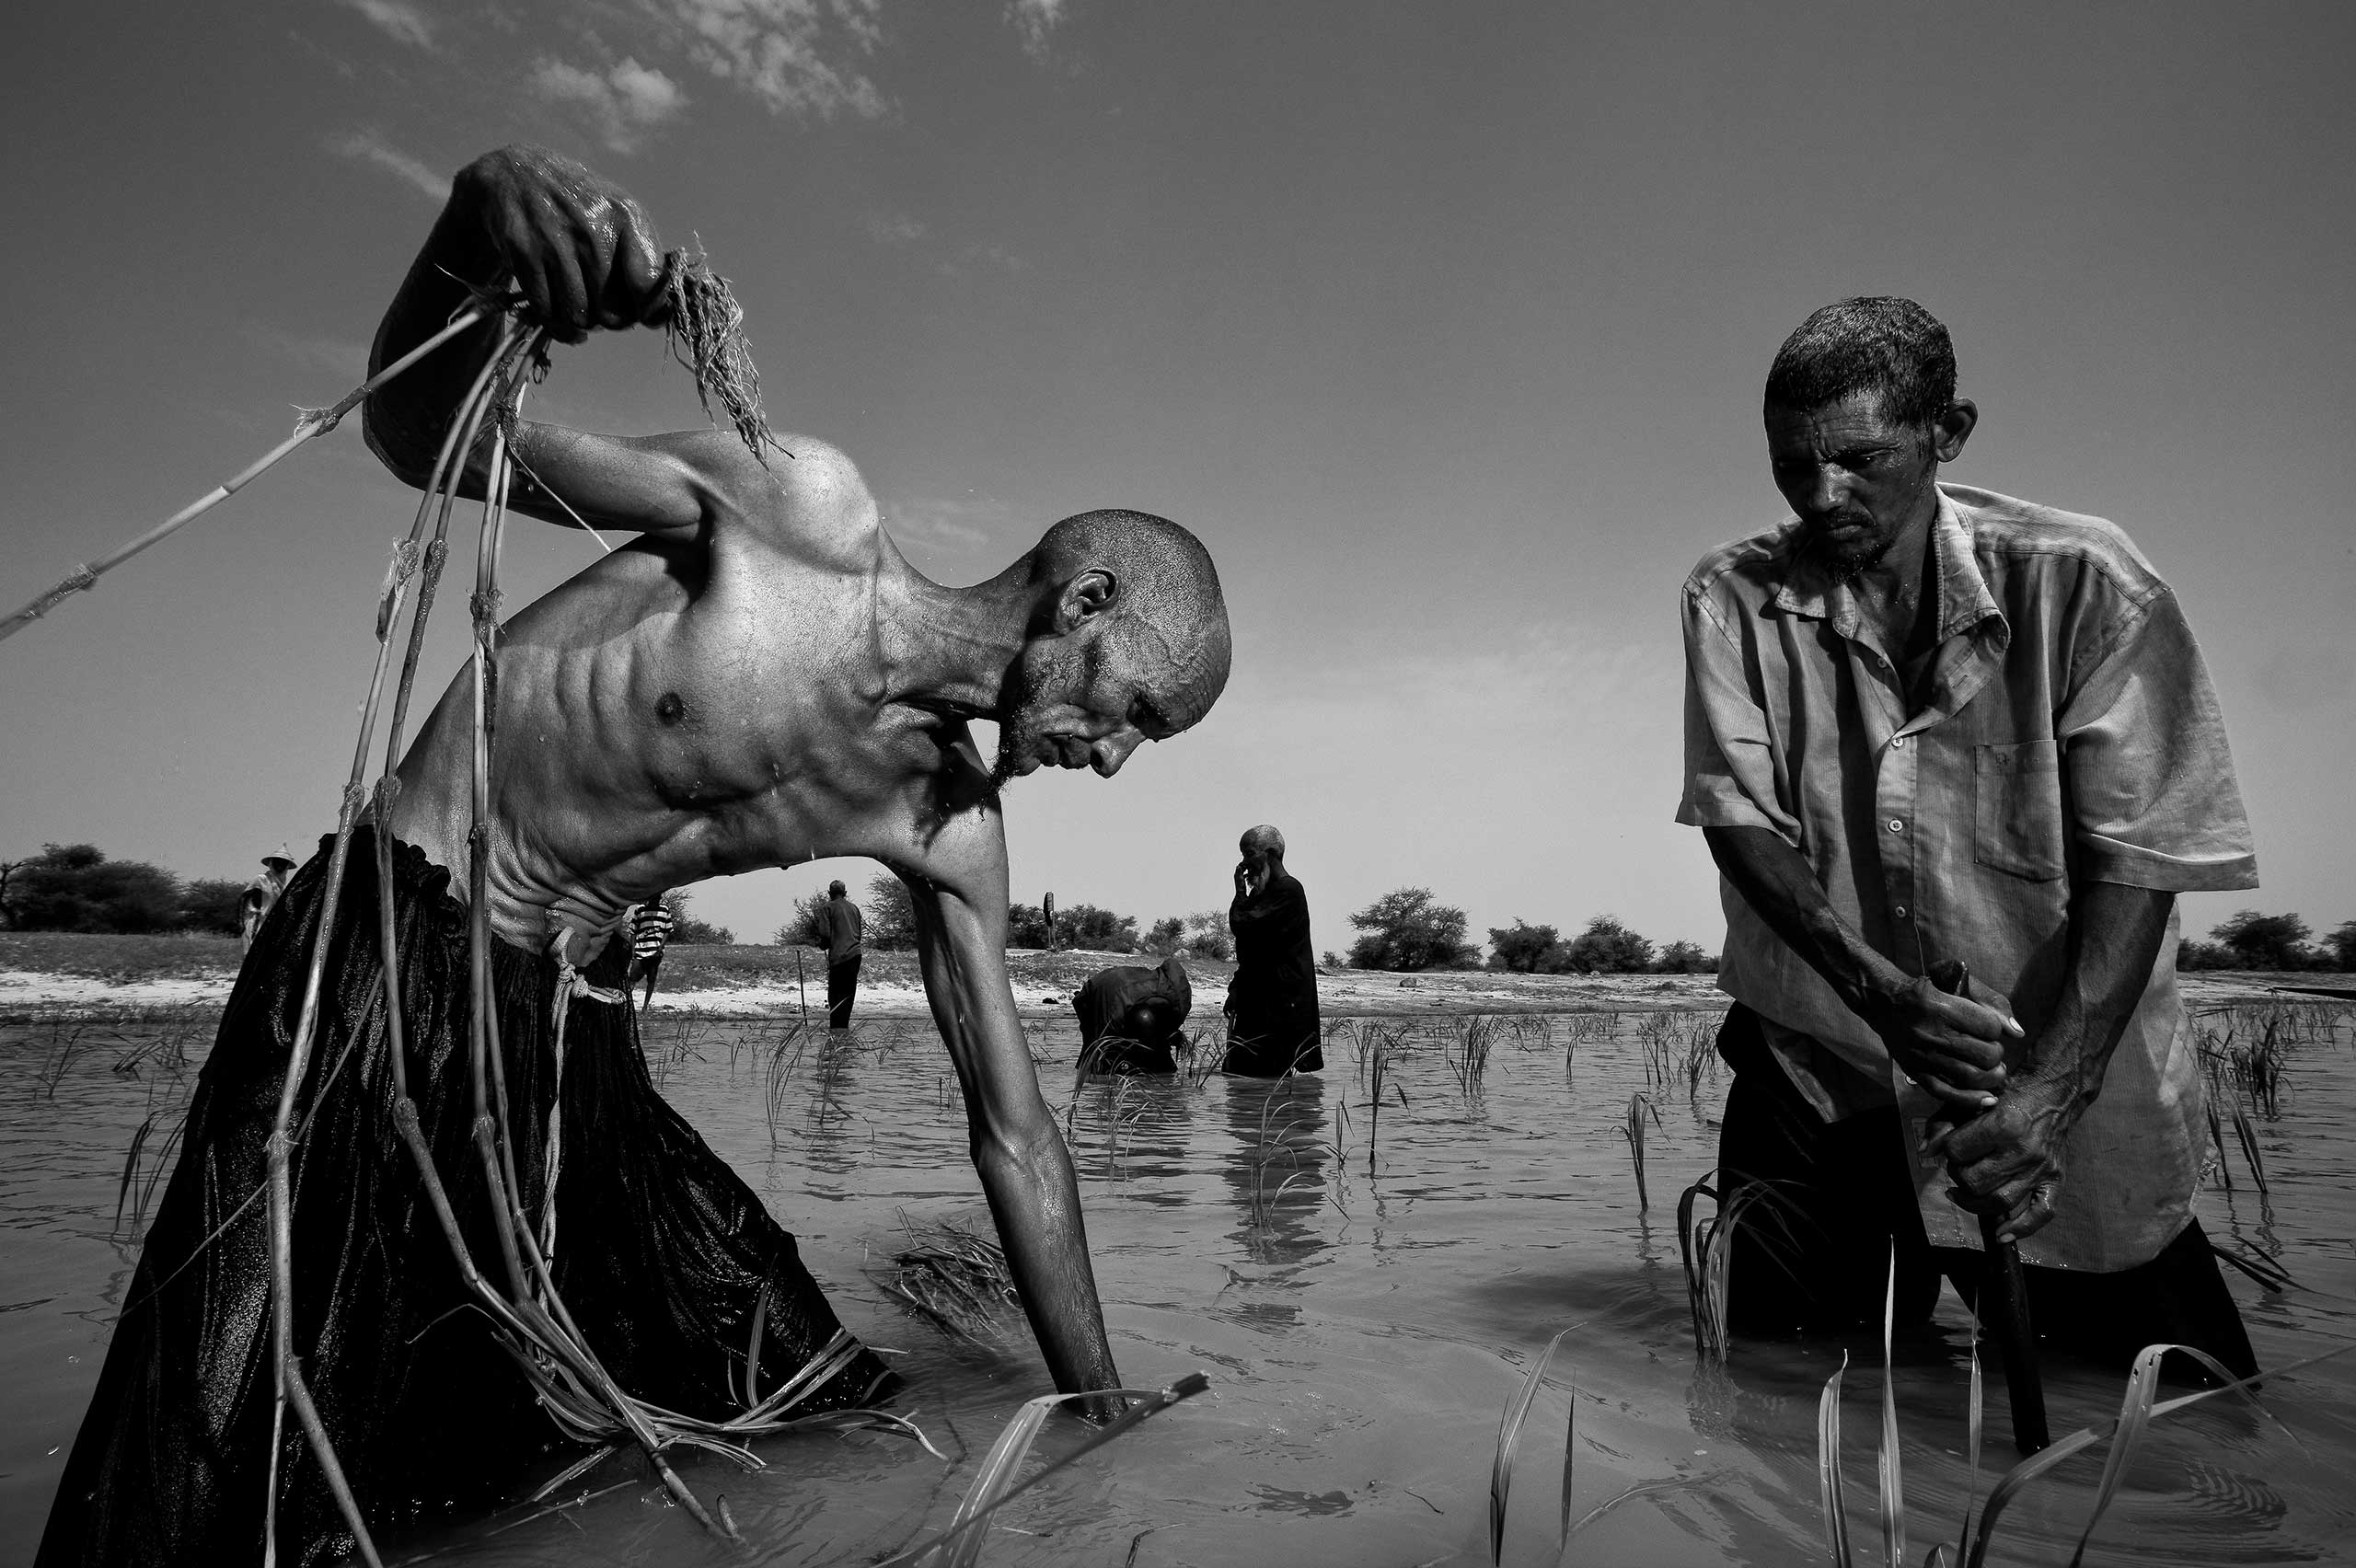 (Photo by Brent Stirton/Getty Images reportage.)